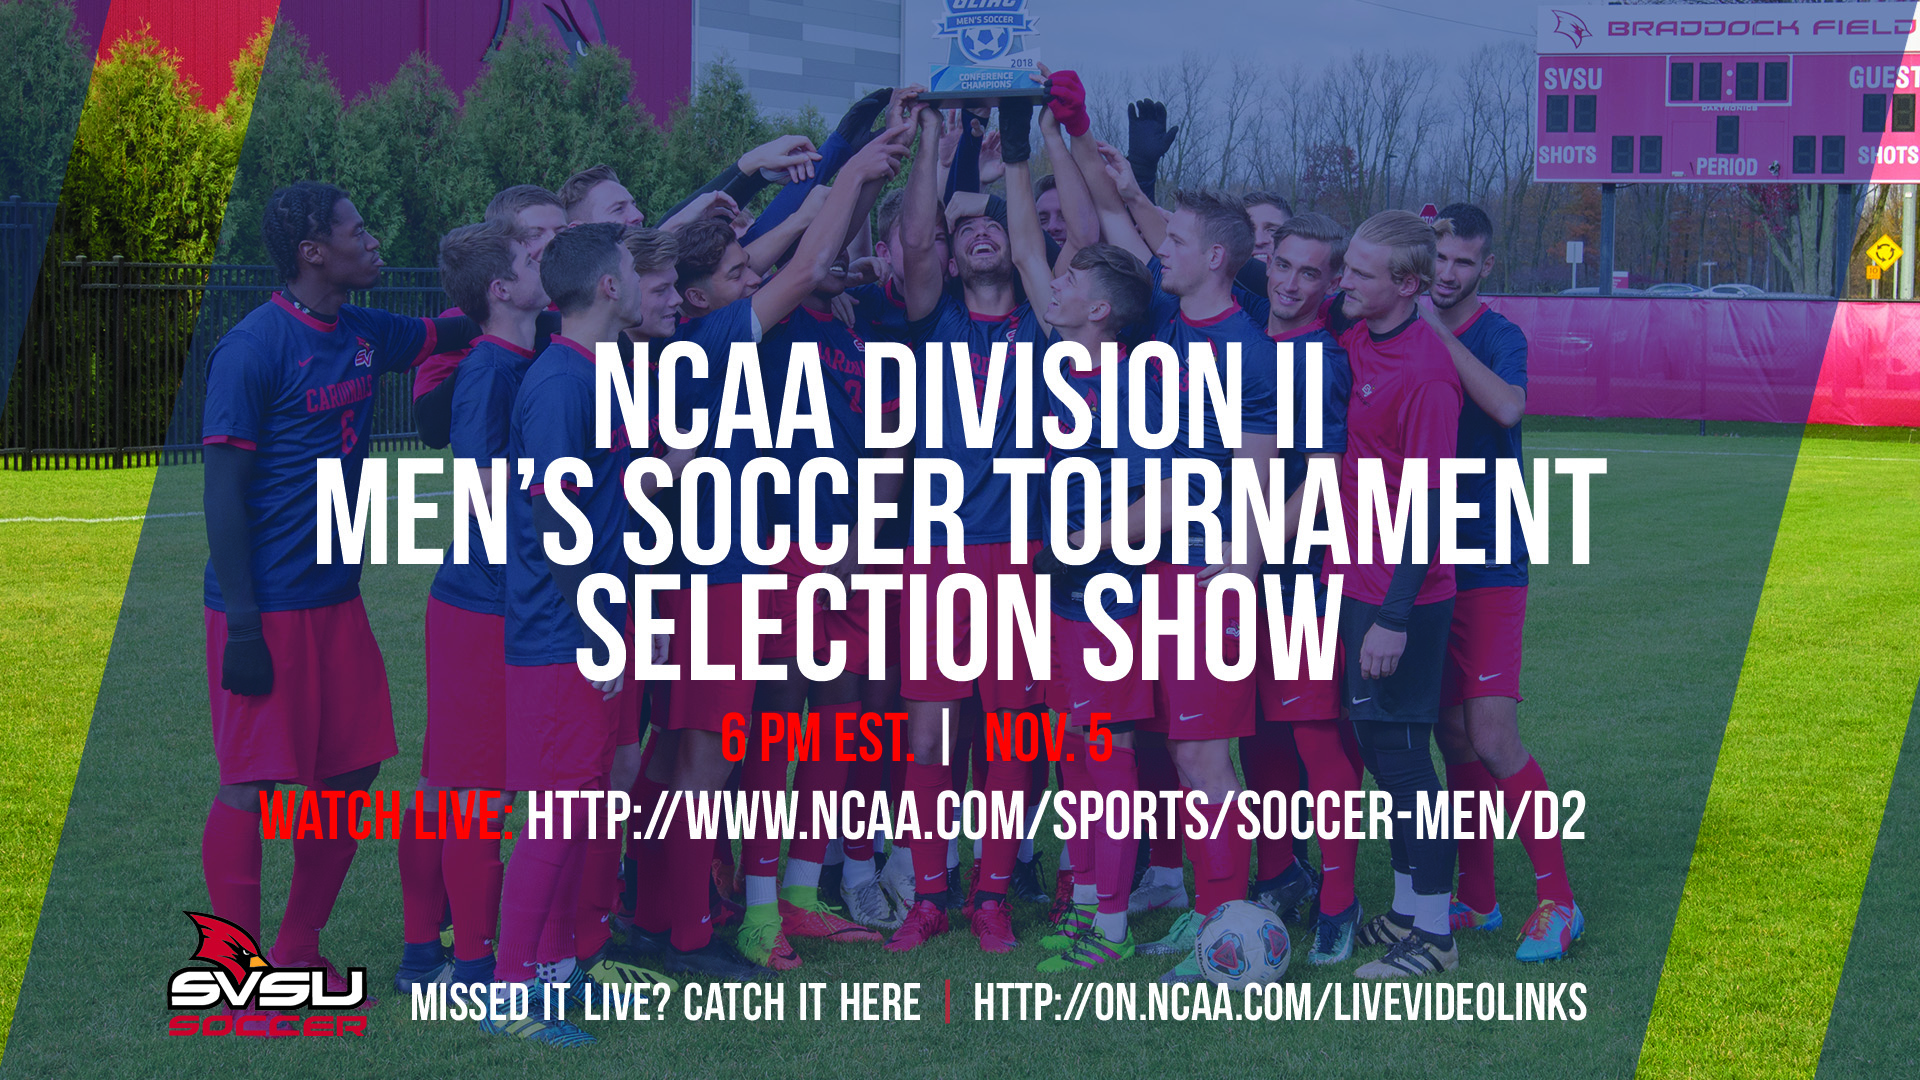 NCAA Men's Soccer Tournament Selection Show Set For 6 P.M. on Monday